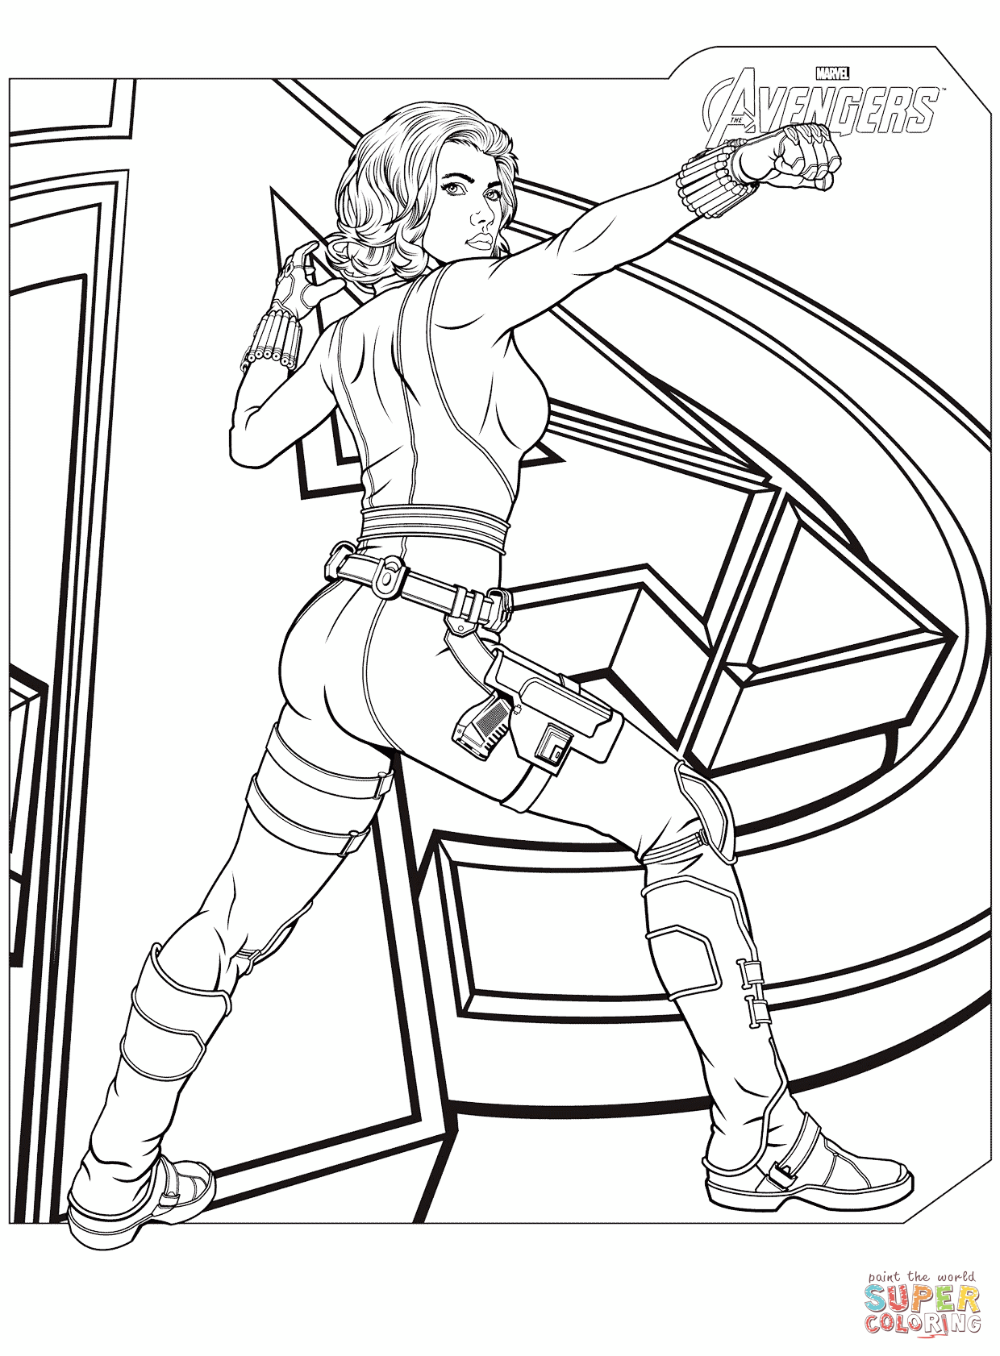 Marvel S The Avengers Coloring Pages Avengers Coloring Marvel Coloring Avengers Coloring Pages